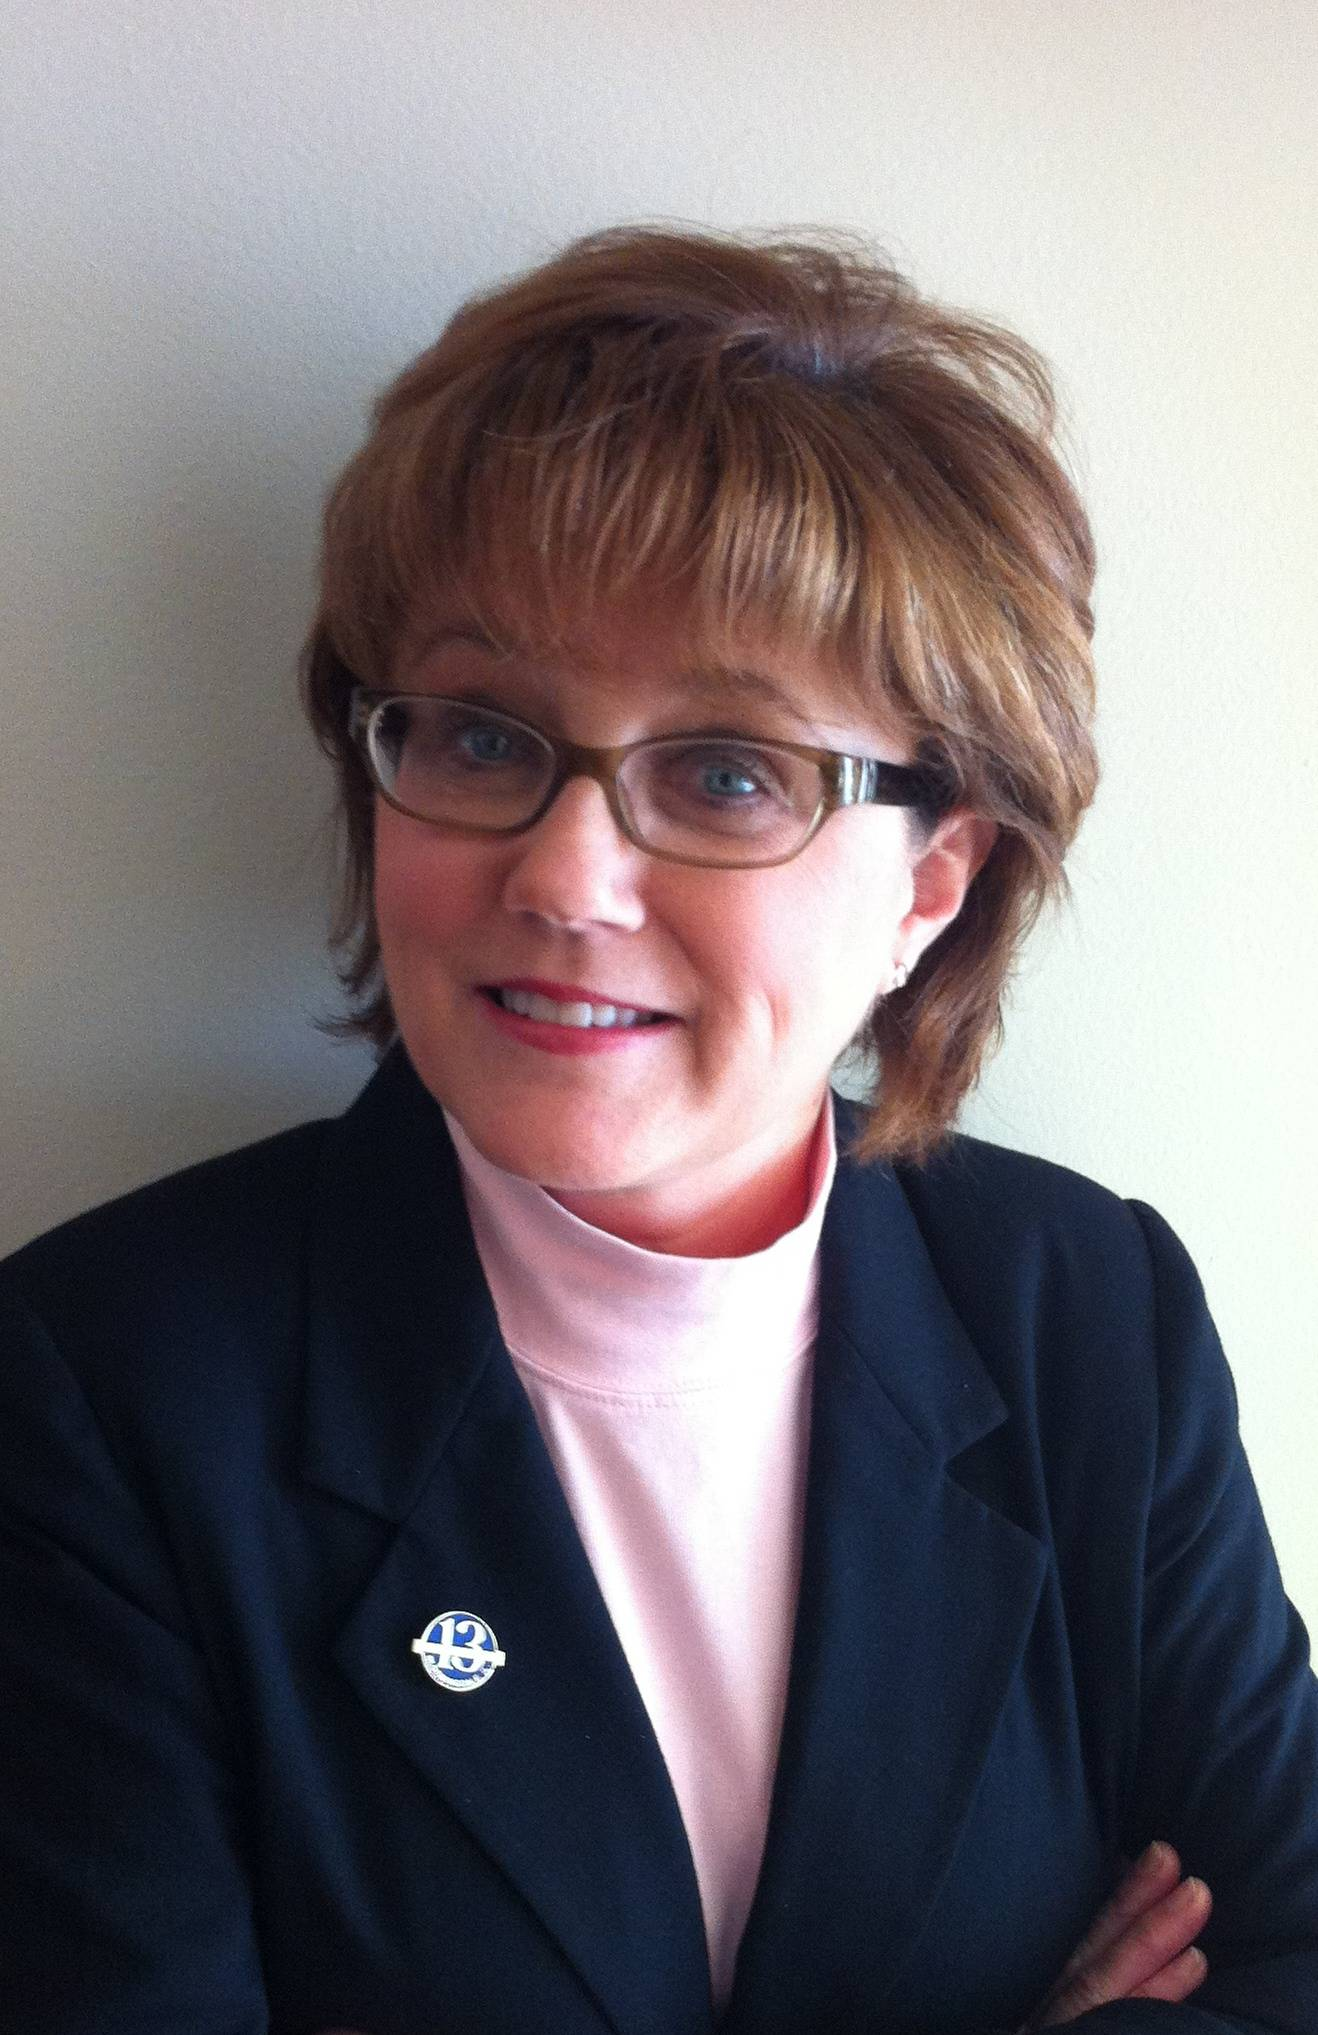 Diane Birkley, running for Bloomingdale District 13 School Board (4-year Terms)